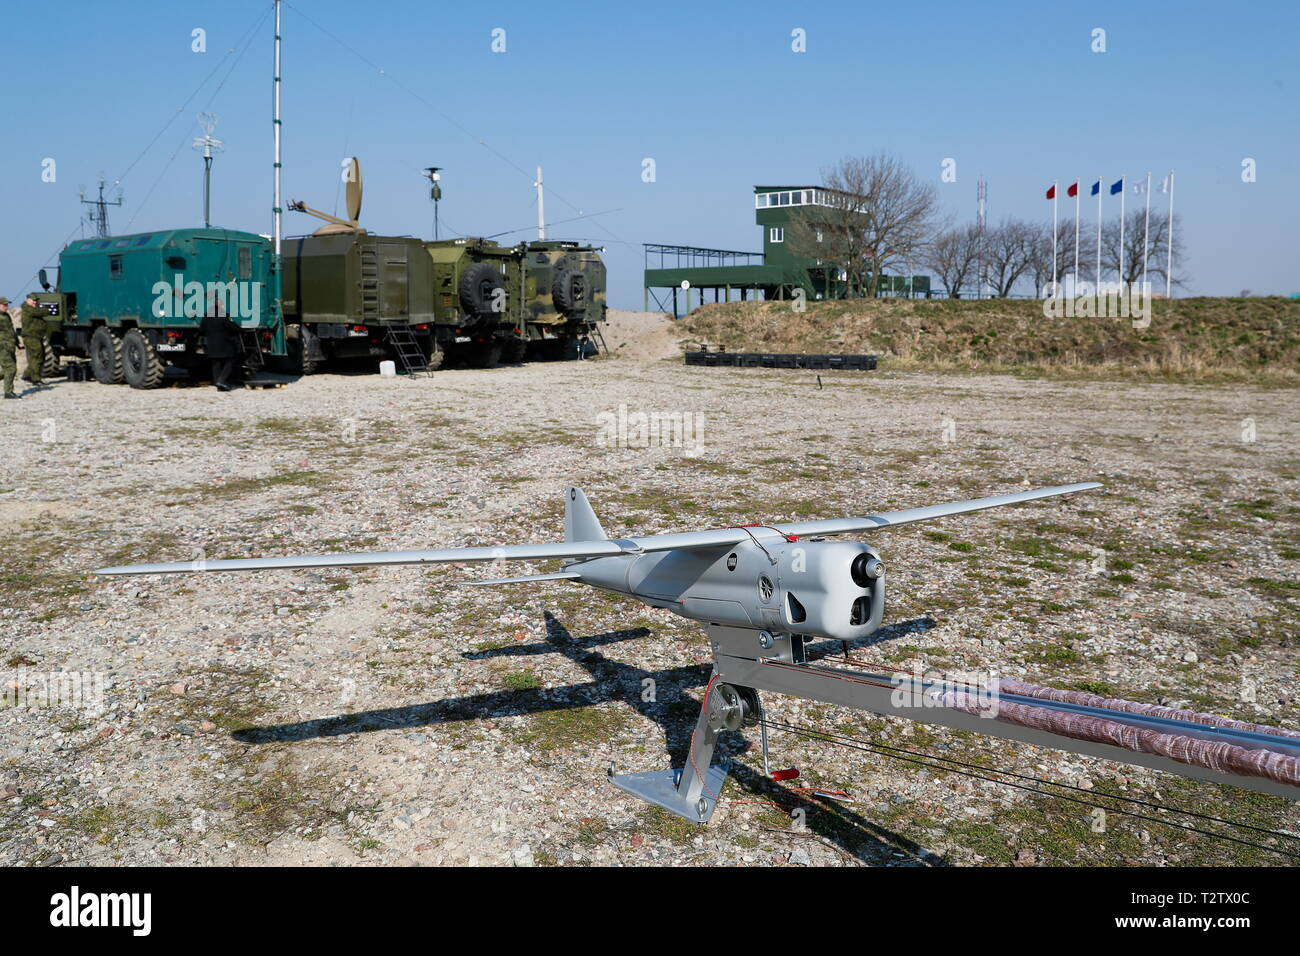 Russia. 04th Apr, 2019. KALININGRAD REGION, RUSSIA - APRIL 4, 2019: An unmanned aerial vehicle is seen during a military exercise in amphibious landing on an unimproved shore by the Russian Baltic Fleet's amphibious assault forces at the Khmelevka range. Over 20 surface vessels of the Russian Baltic Fleet, about 20 aircraft of the Russian Naval Aviation, and over 40 units of military hardware of Russia's Coastal Troops take part in the training. Vitaly Nevar/TASS Credit: ITAR-TASS News Agency/Alamy Live News Stock Photo